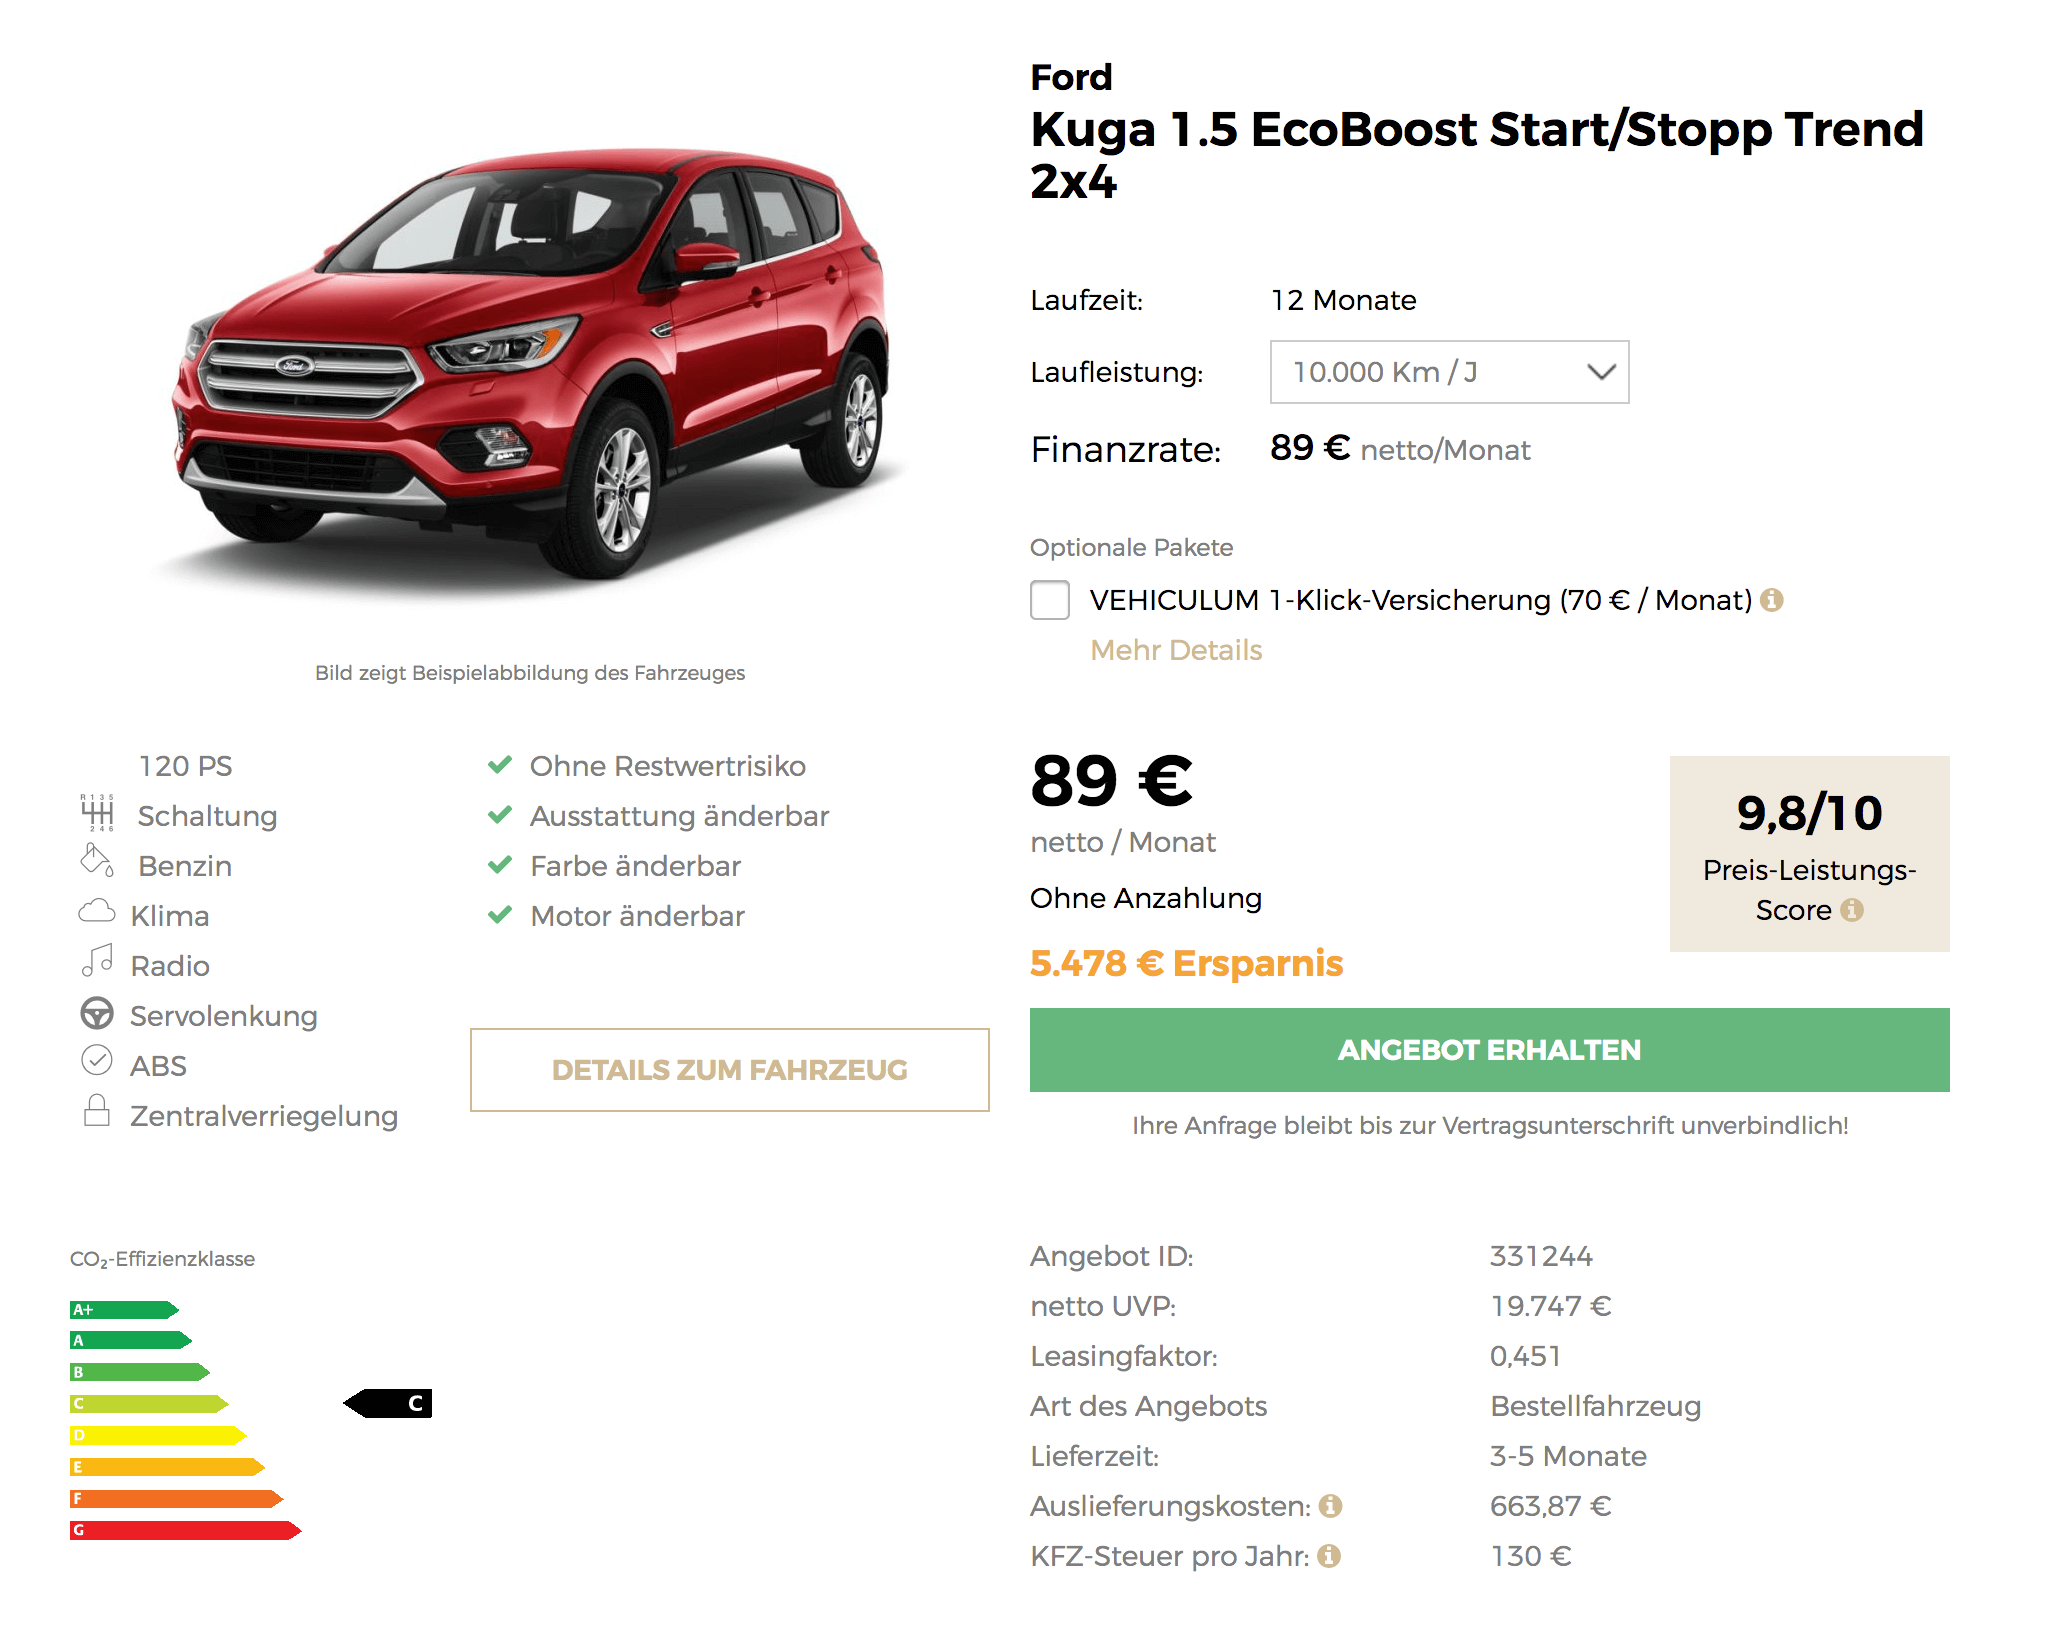 ford kuga leasing f r 89 euro im monat netto 12 monate. Black Bedroom Furniture Sets. Home Design Ideas